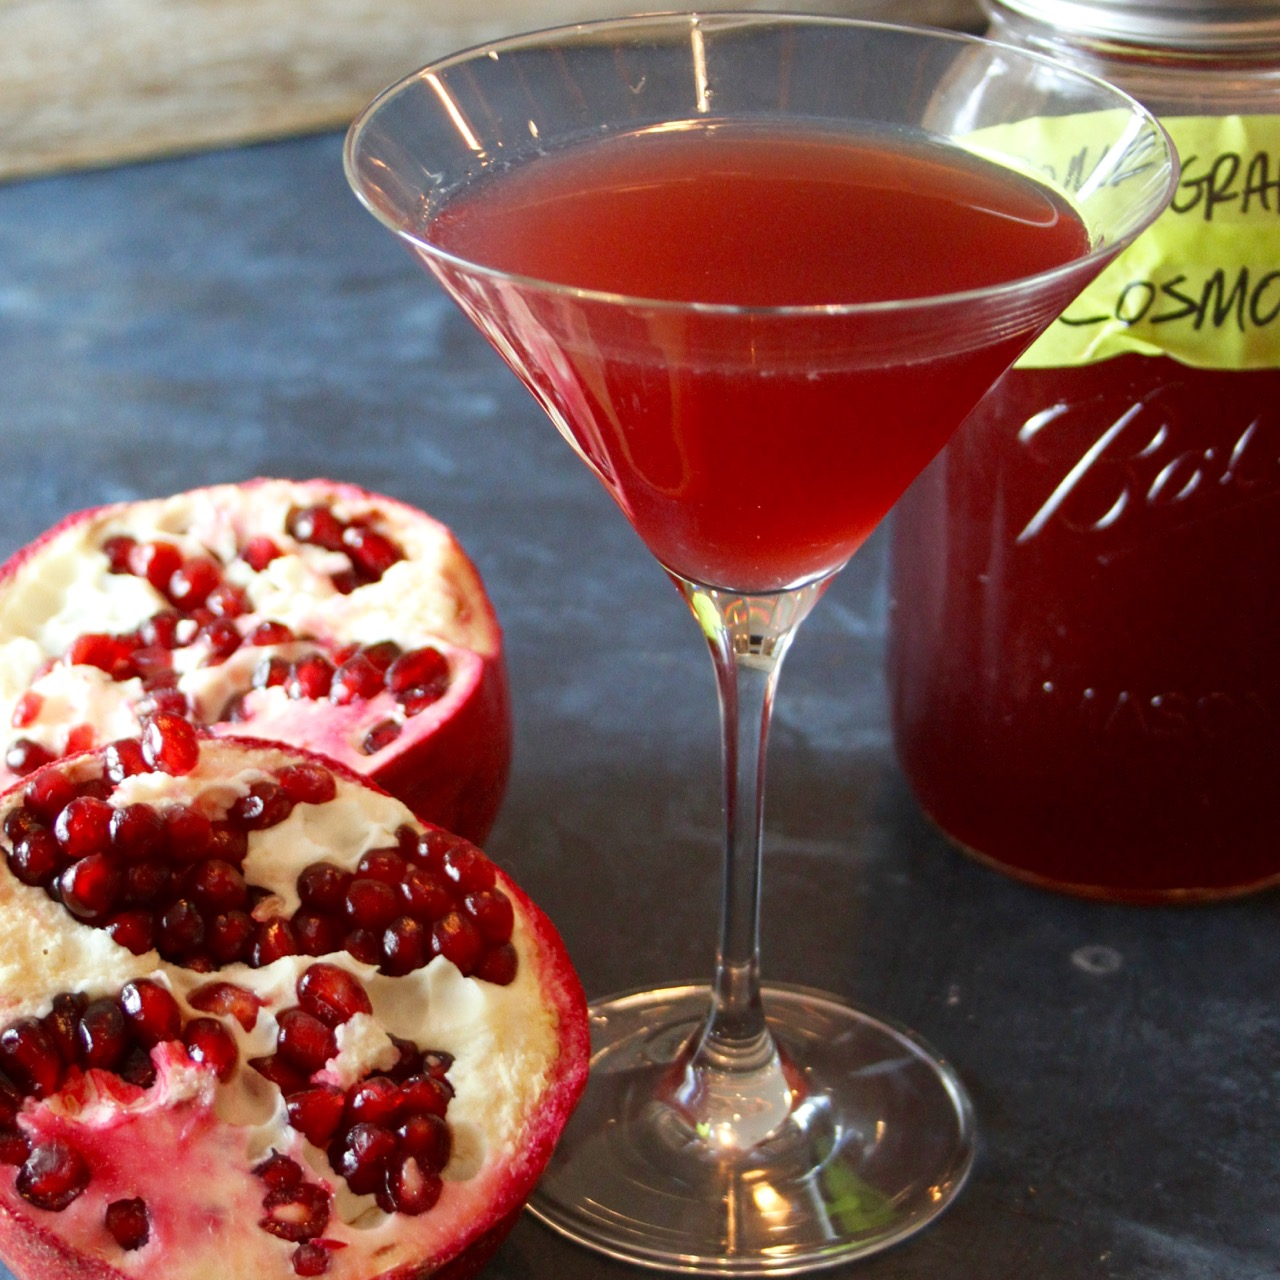 Icy Pomegranate Cosmopolitans